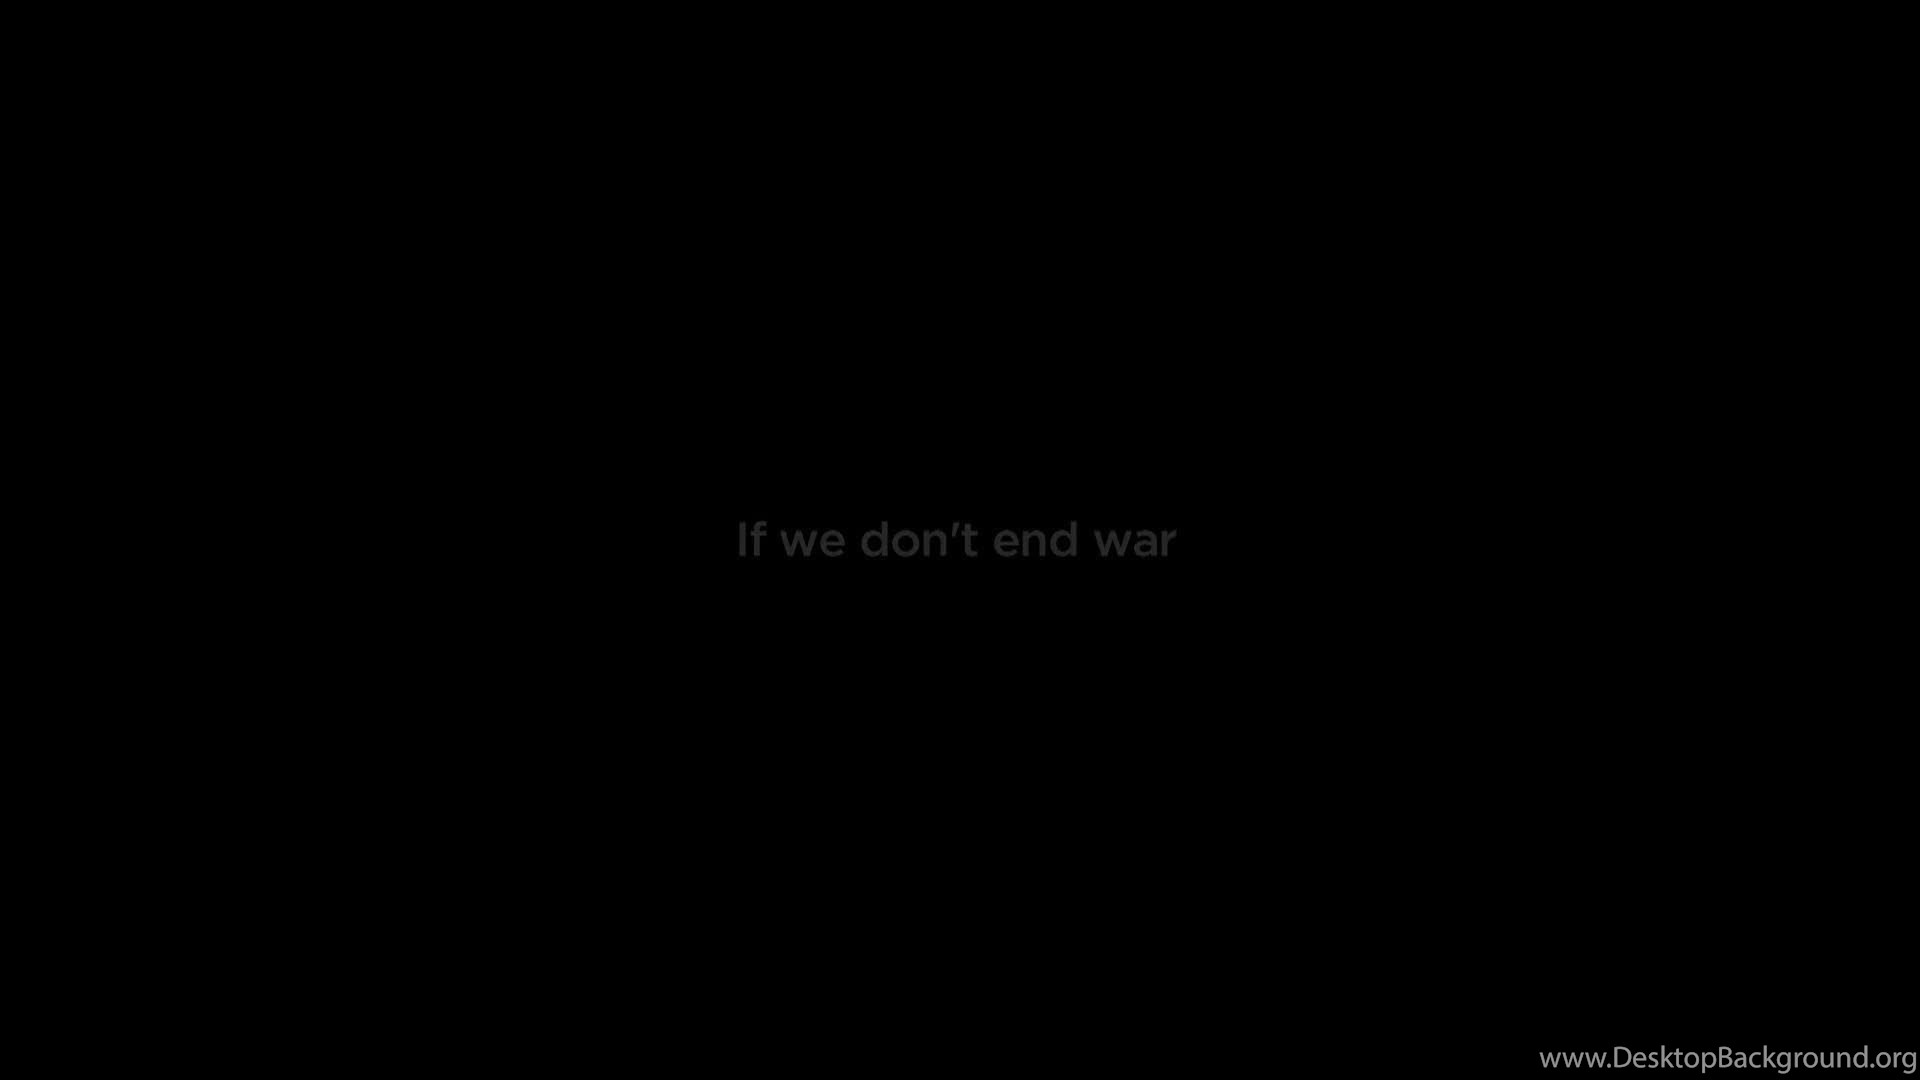 30 Seconds To Mars This Is War Music Video